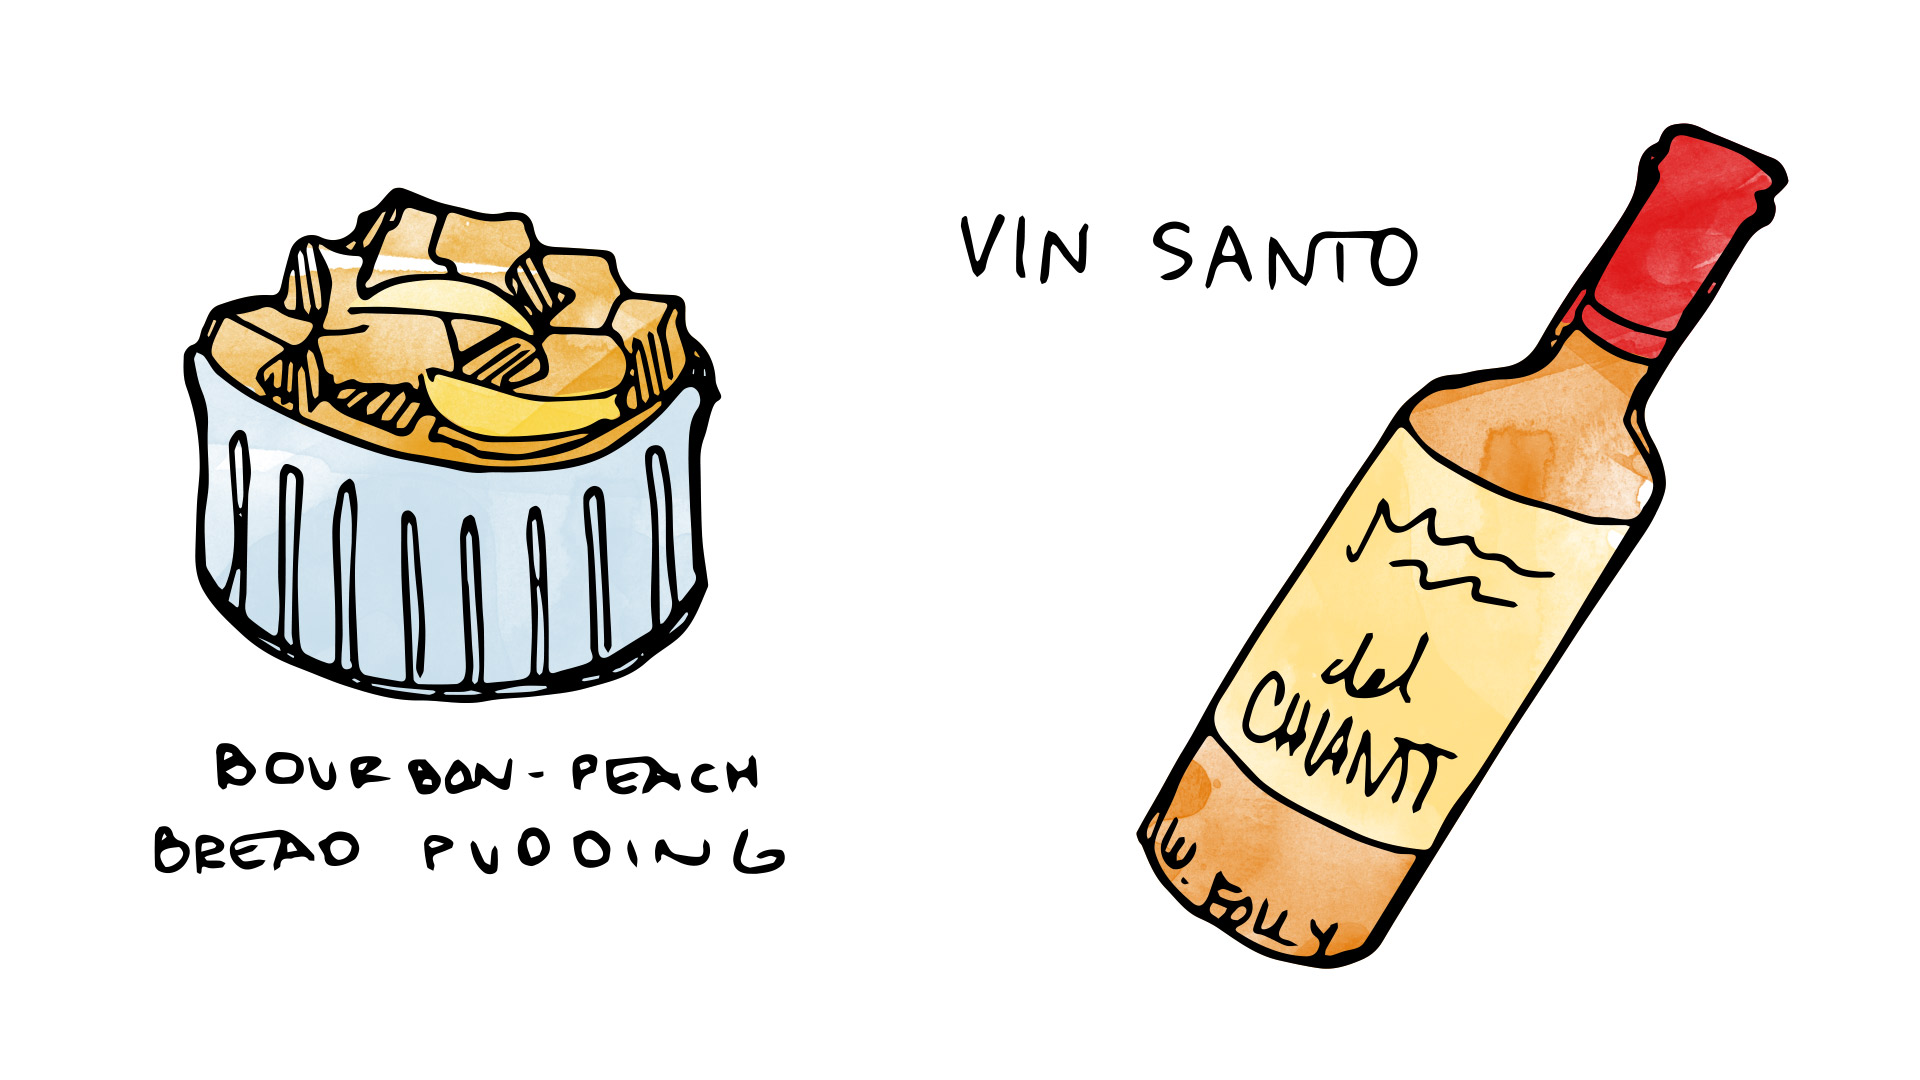 Peach Bourbon Bread Pudding wine pairing with Vin Santo illustration by Wine Folly